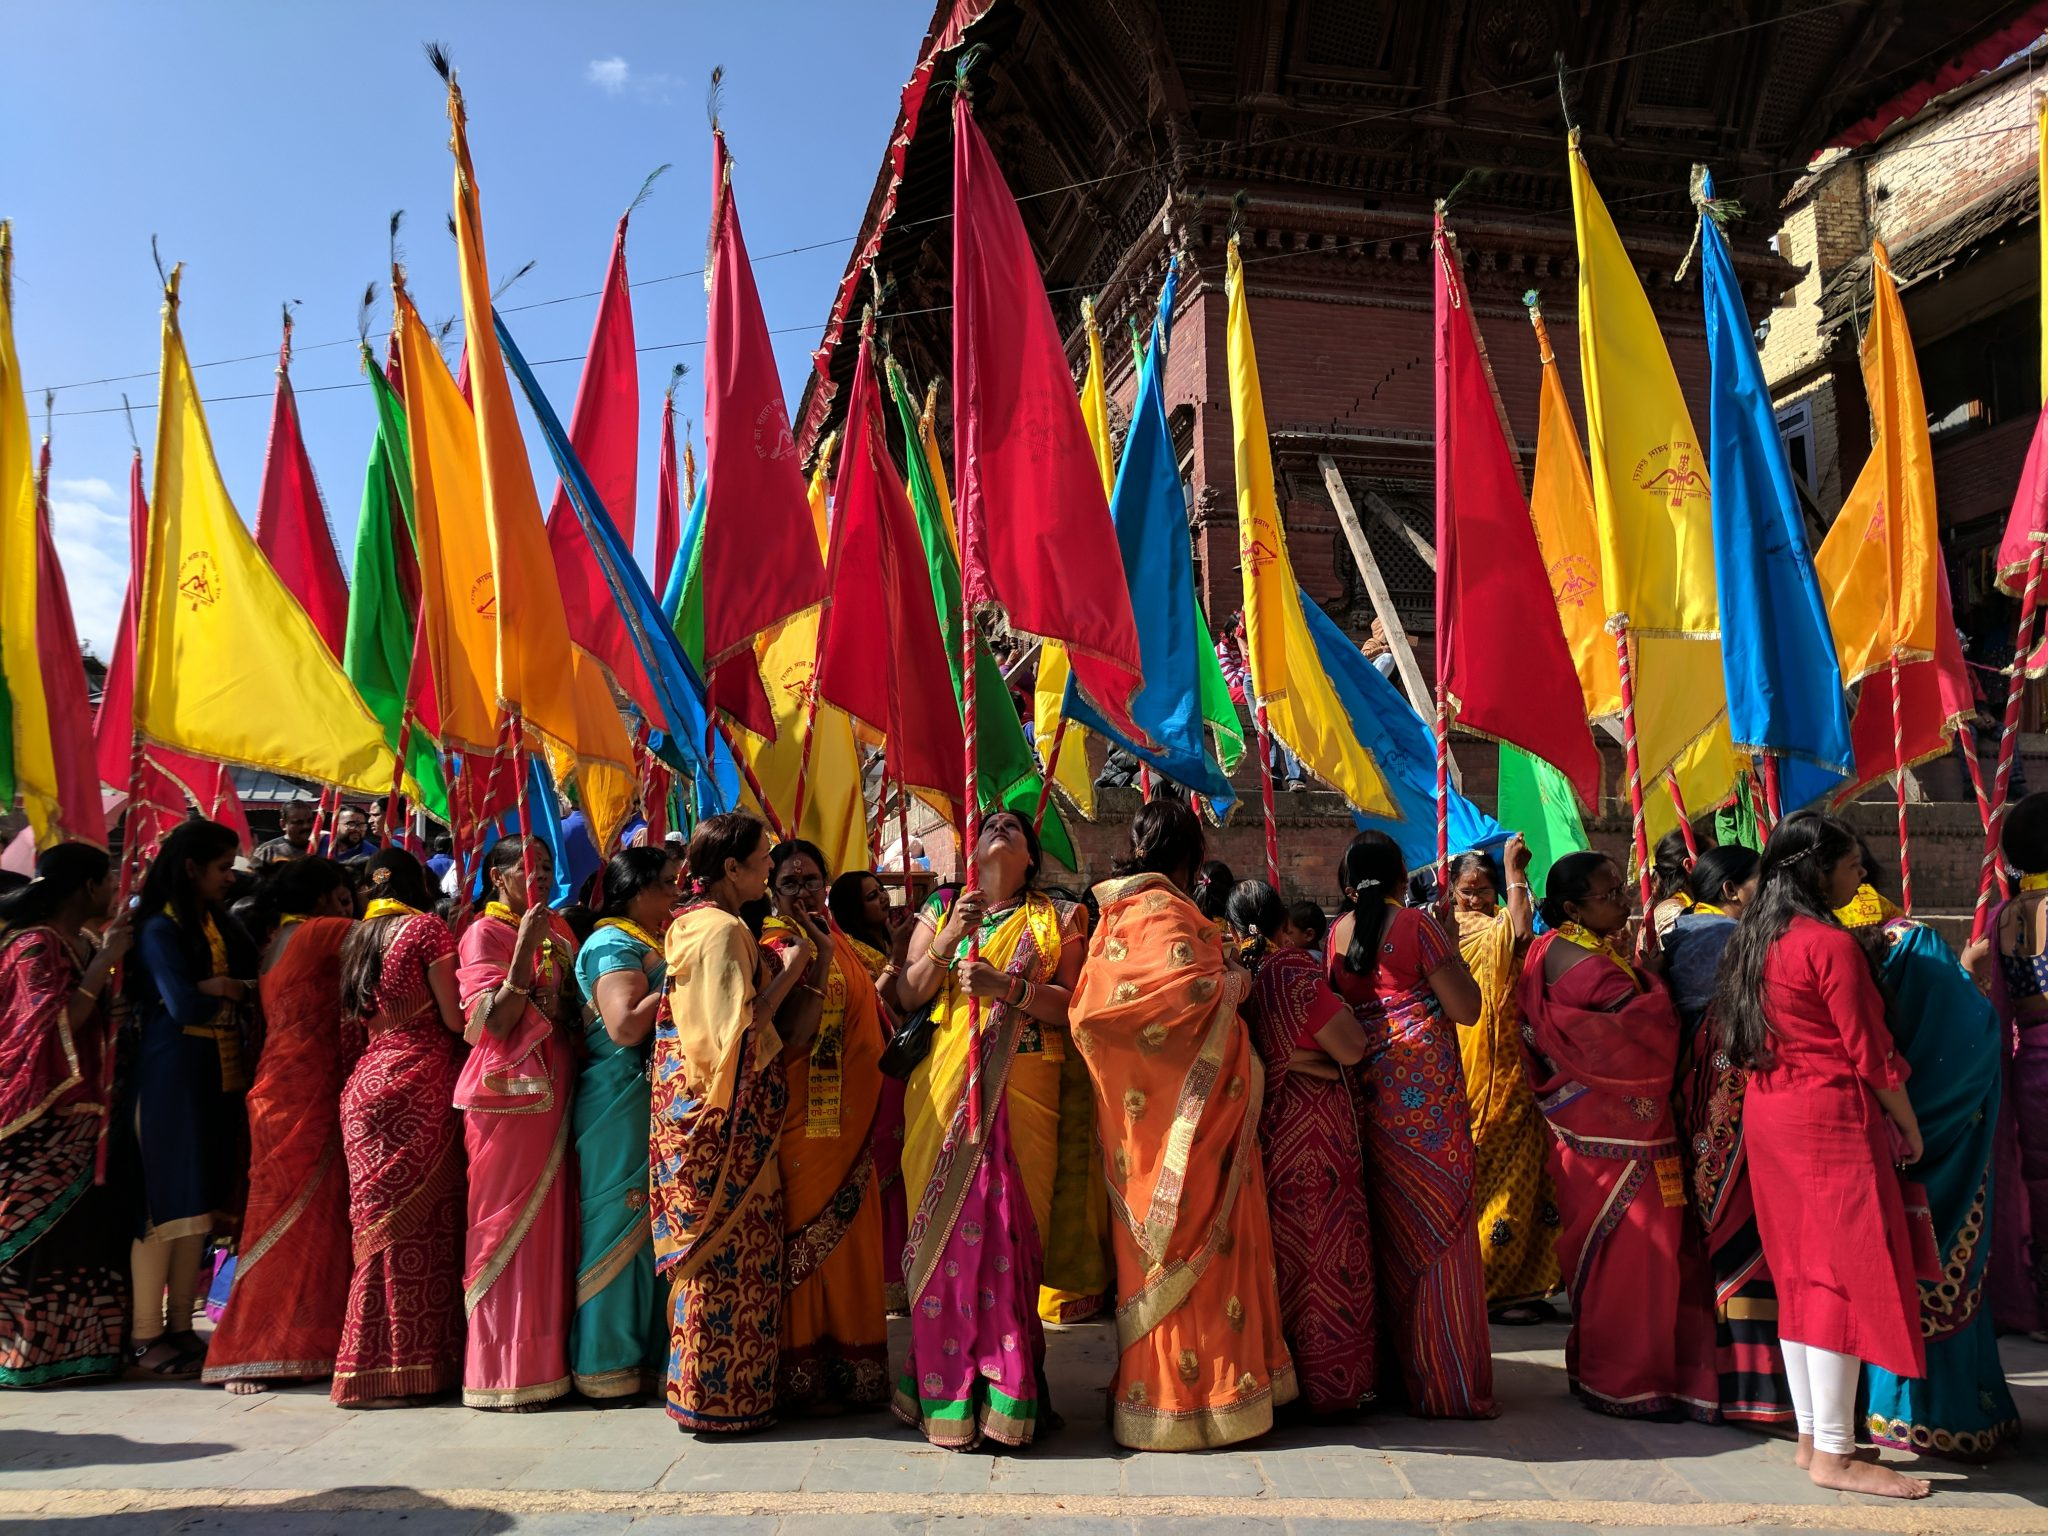 Women celebrating a festival in the Durbar Square, Kathmandu